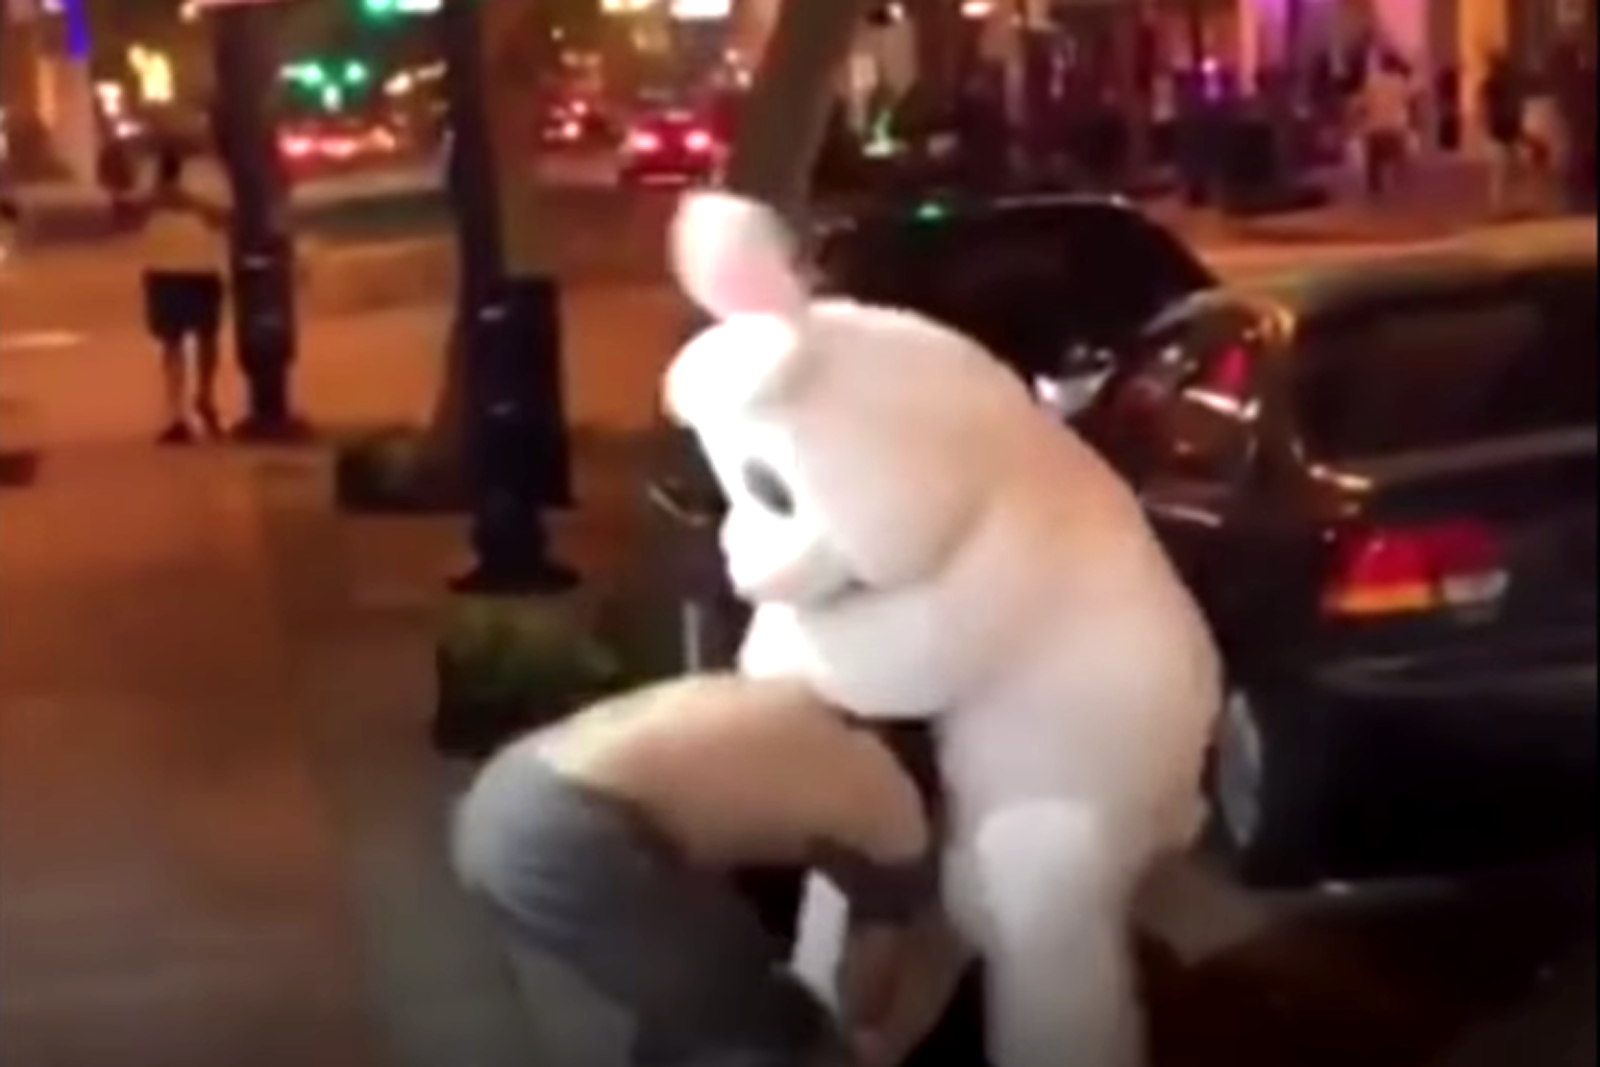 'Orlando Easter Bunny' tries to avoid arrest in bunny suit, cops hip to the scheme